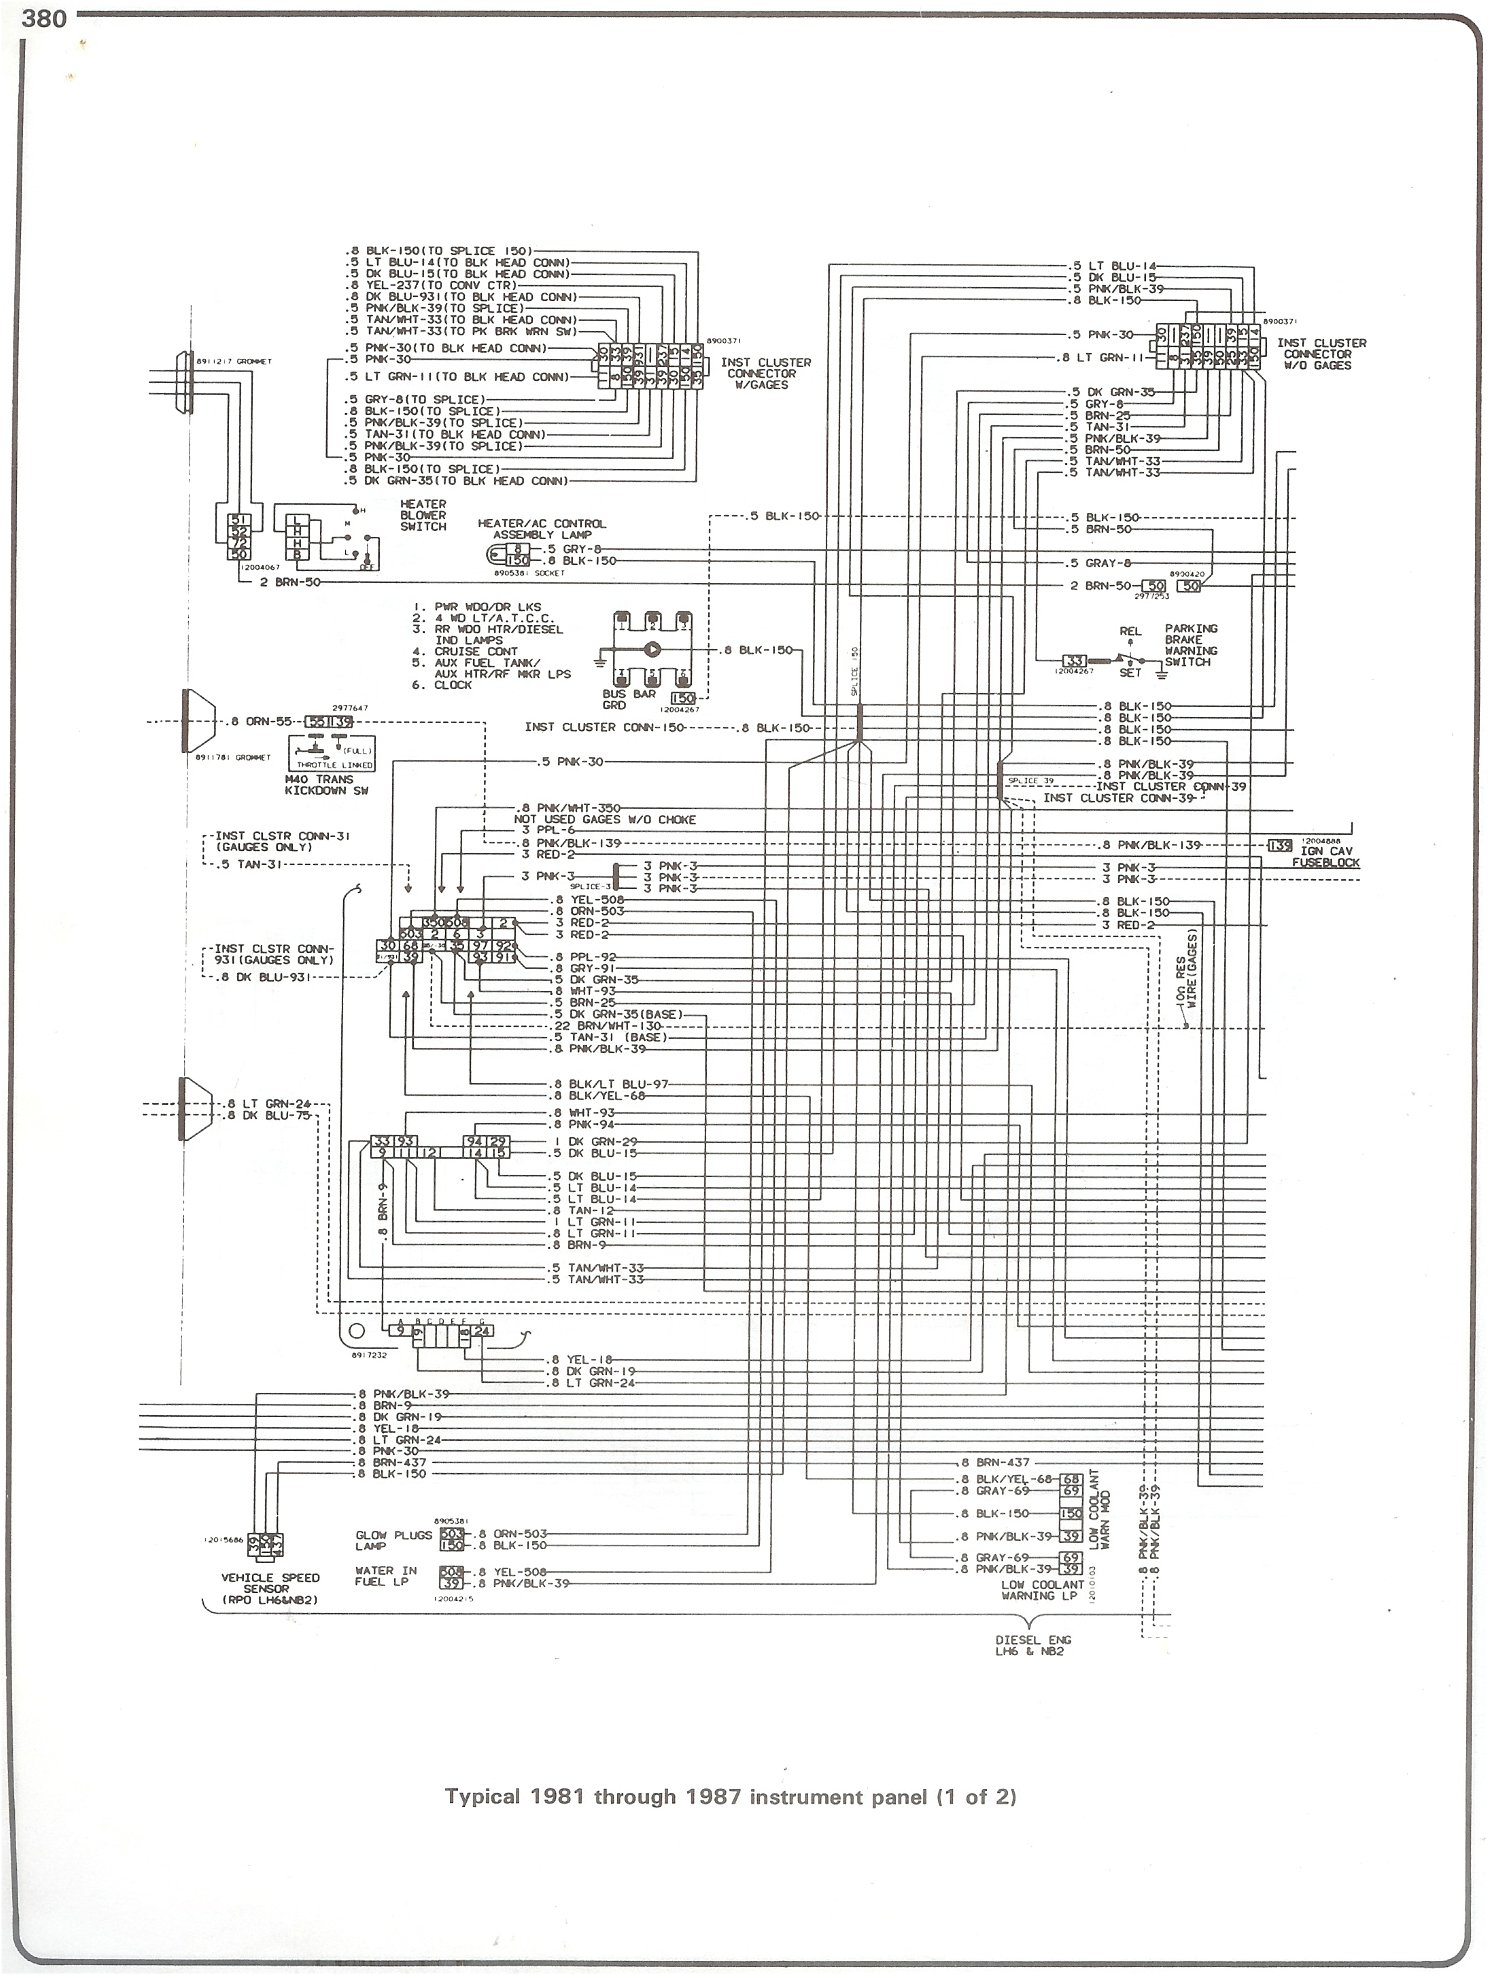 1999 Chevrolet P30 Wiring Diagram - Wiring Diagrams Hubs - 1985 Chevy Truck Wiring Diagram